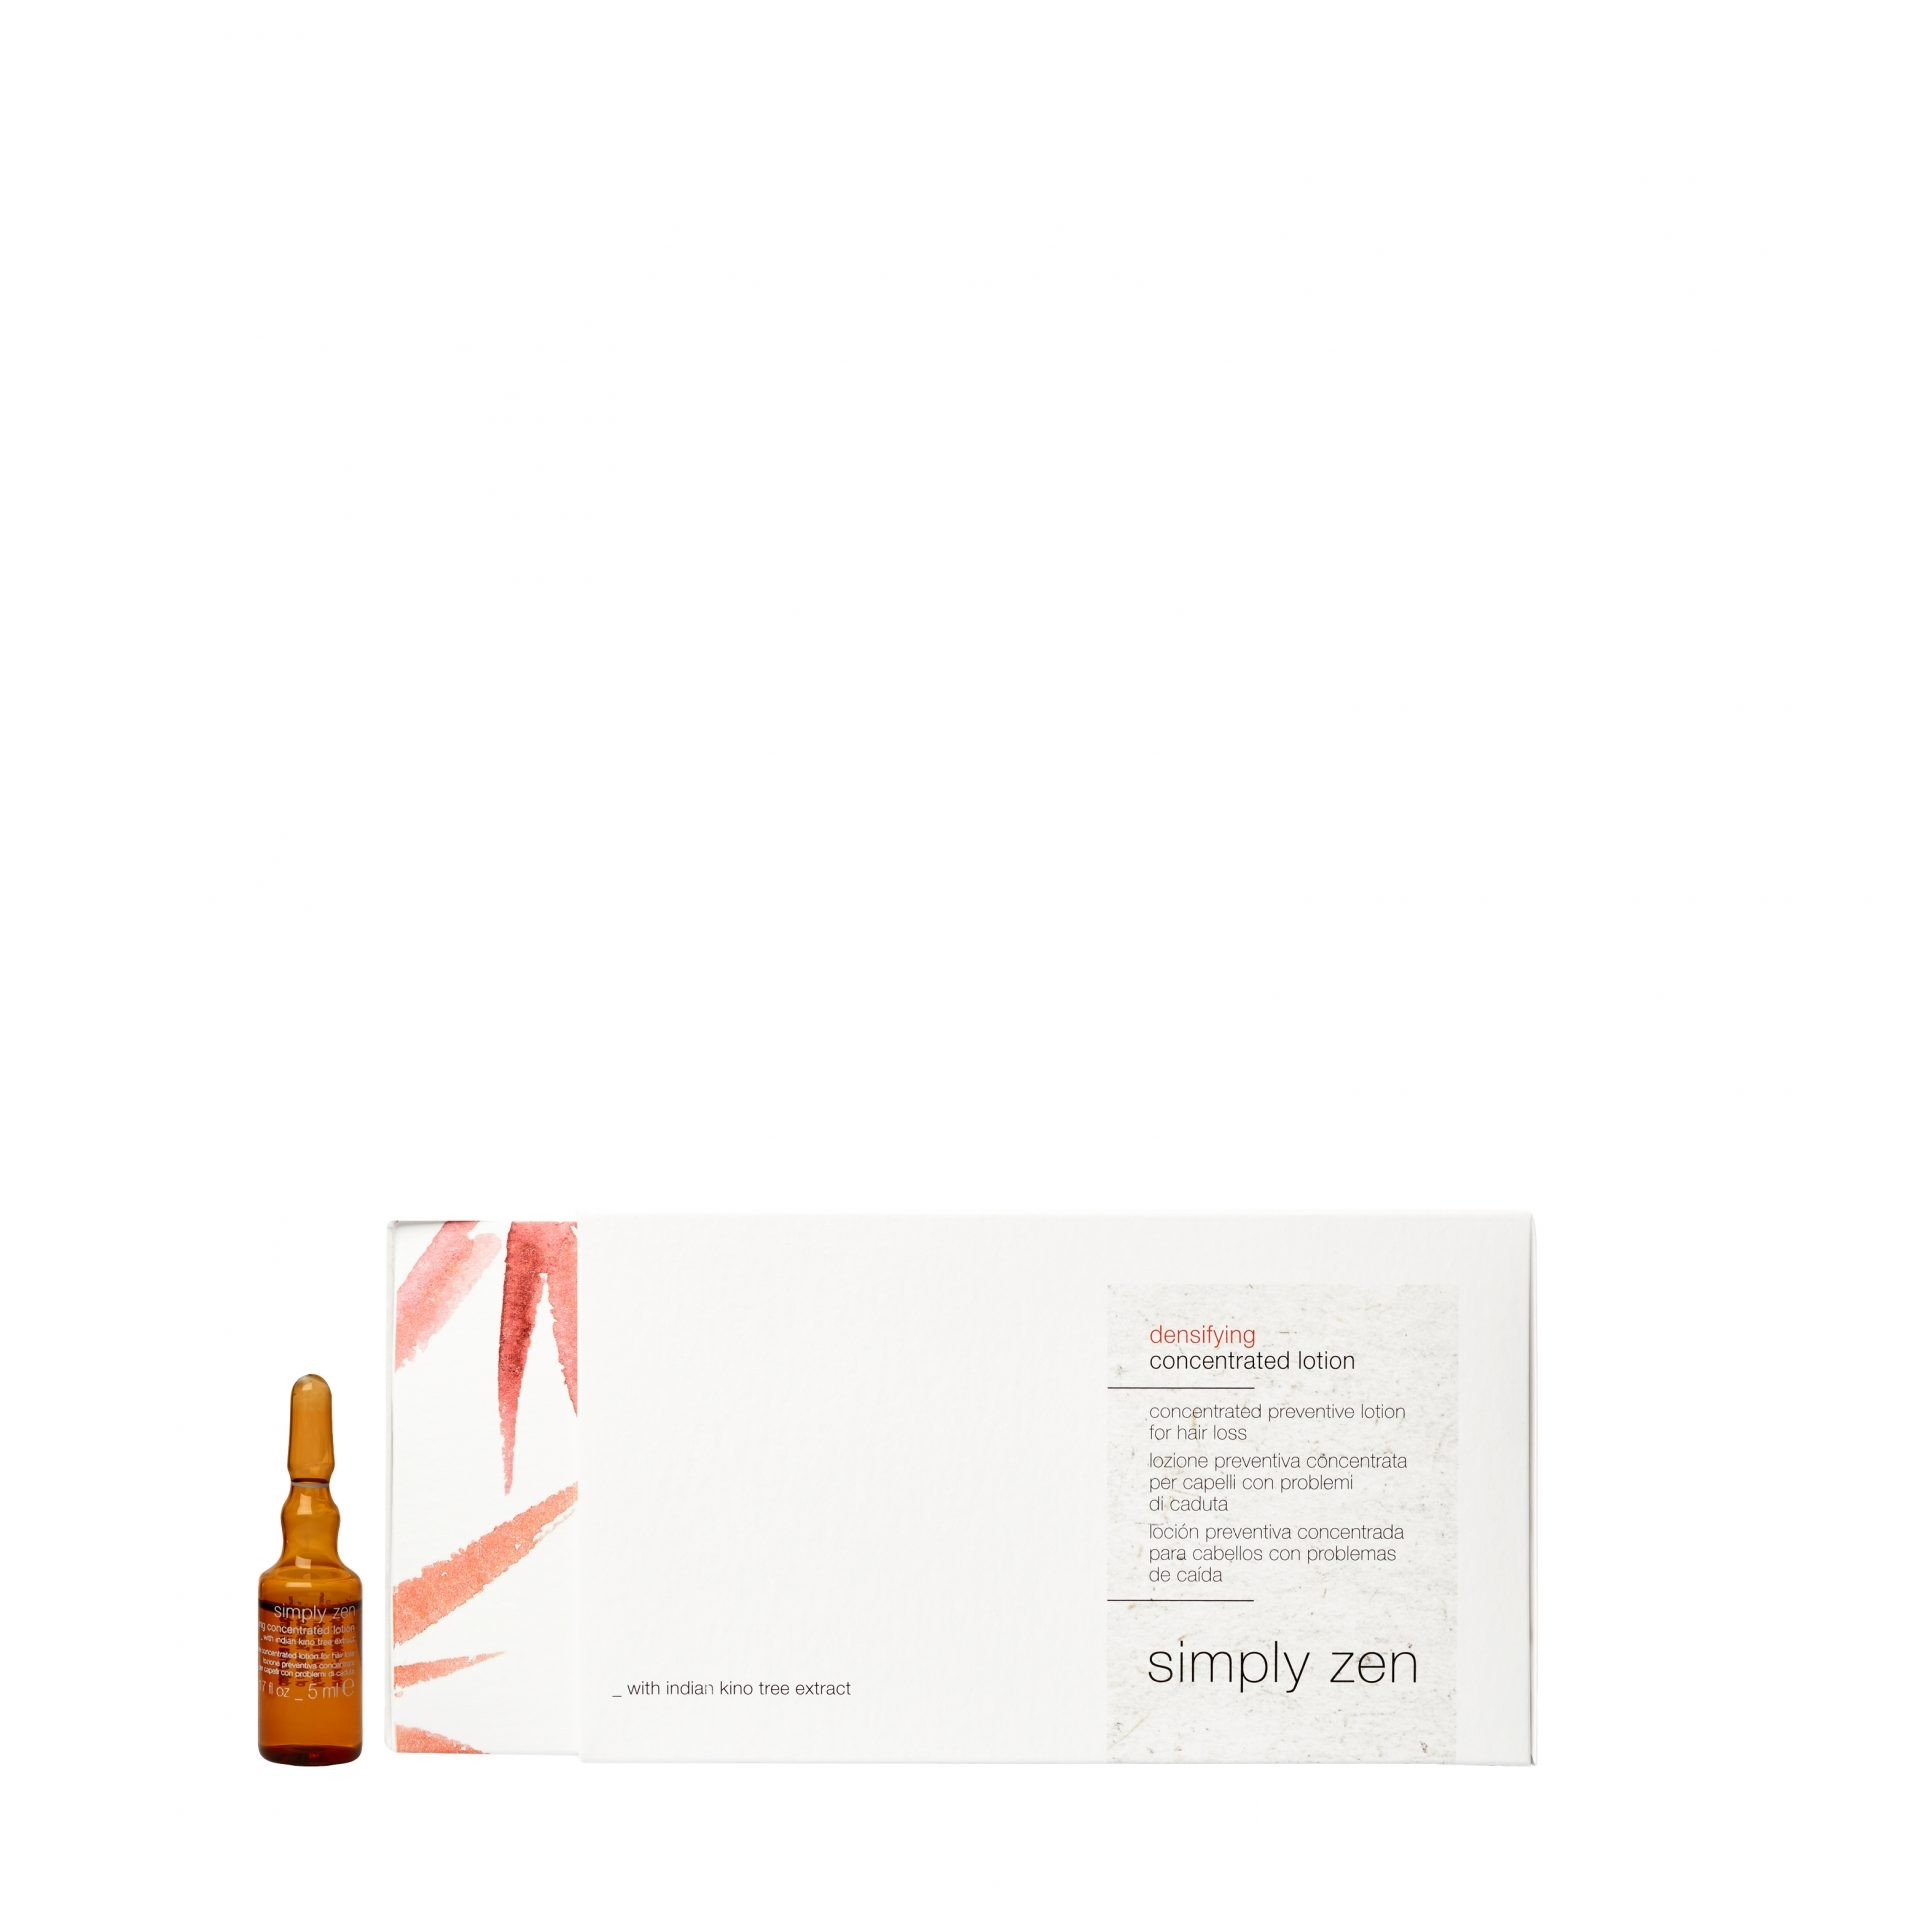 22 IMG SZ singole prodotti 1500x1500px 72 DPI densifying concentrated lotion